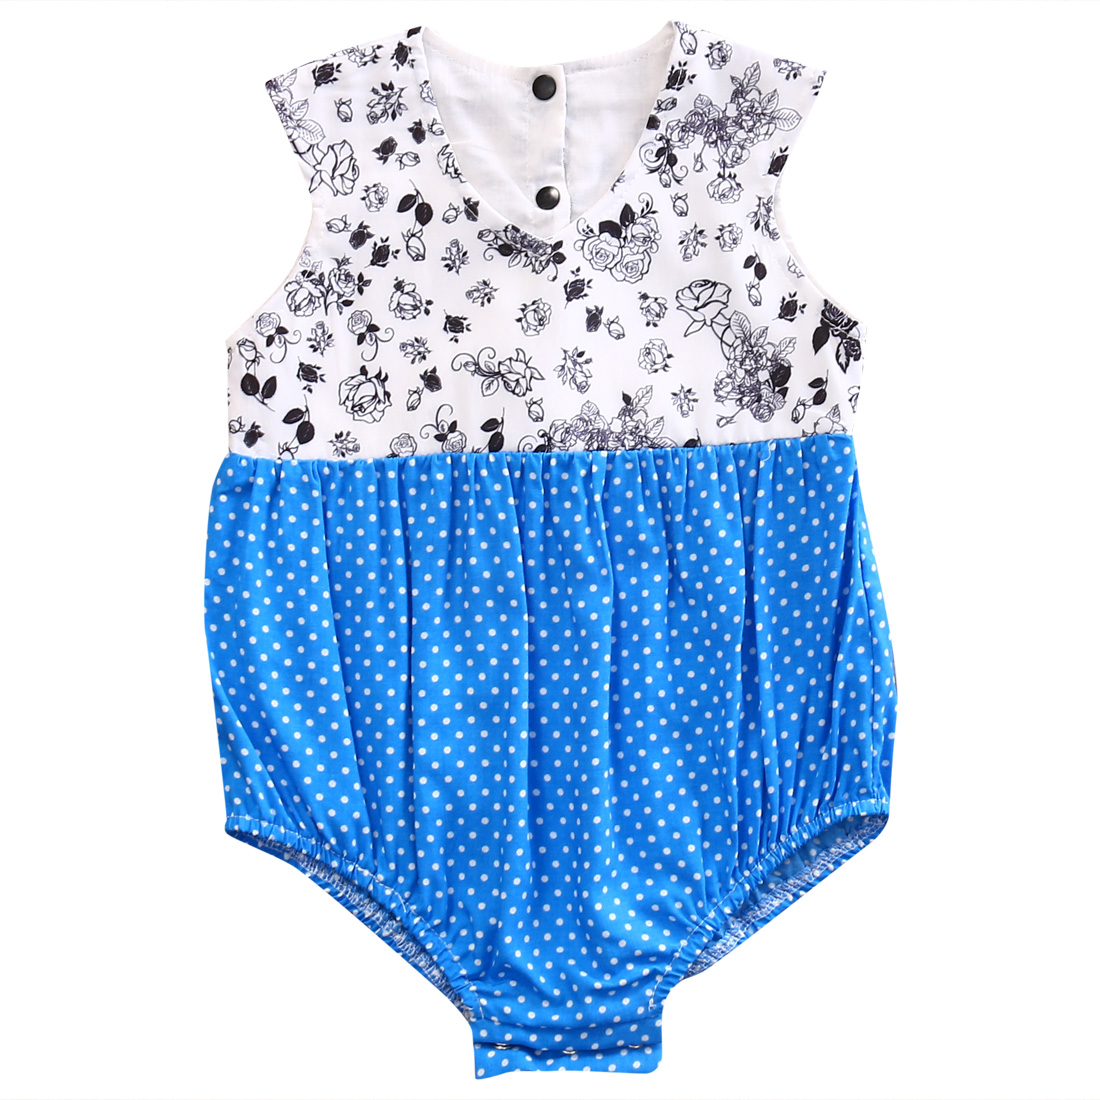 Cotton Newborn Toddler Baby Girl Floral Romper Jumpsuit Girls Summer Outfits One-Pieces Clothes